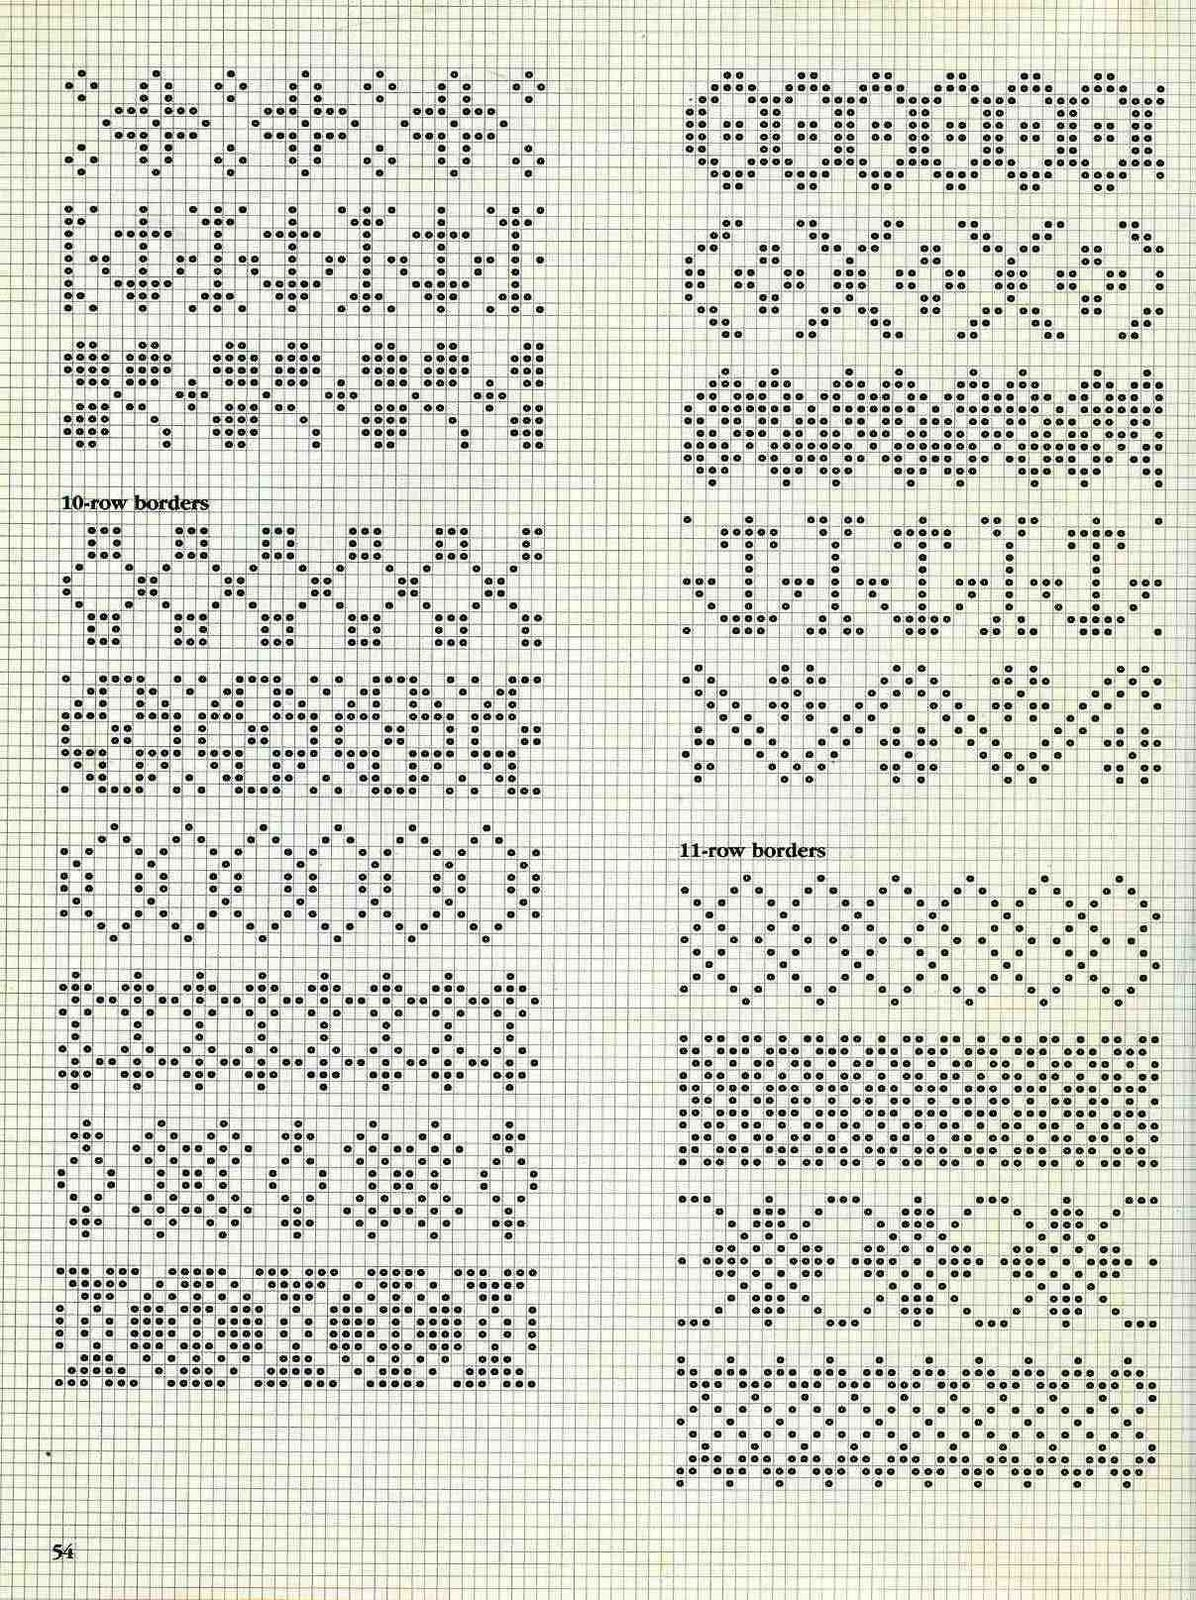 Nordic Knitting Motifs Fair Isle Knitting Patterns Cross Stitch Borders Fair Isle